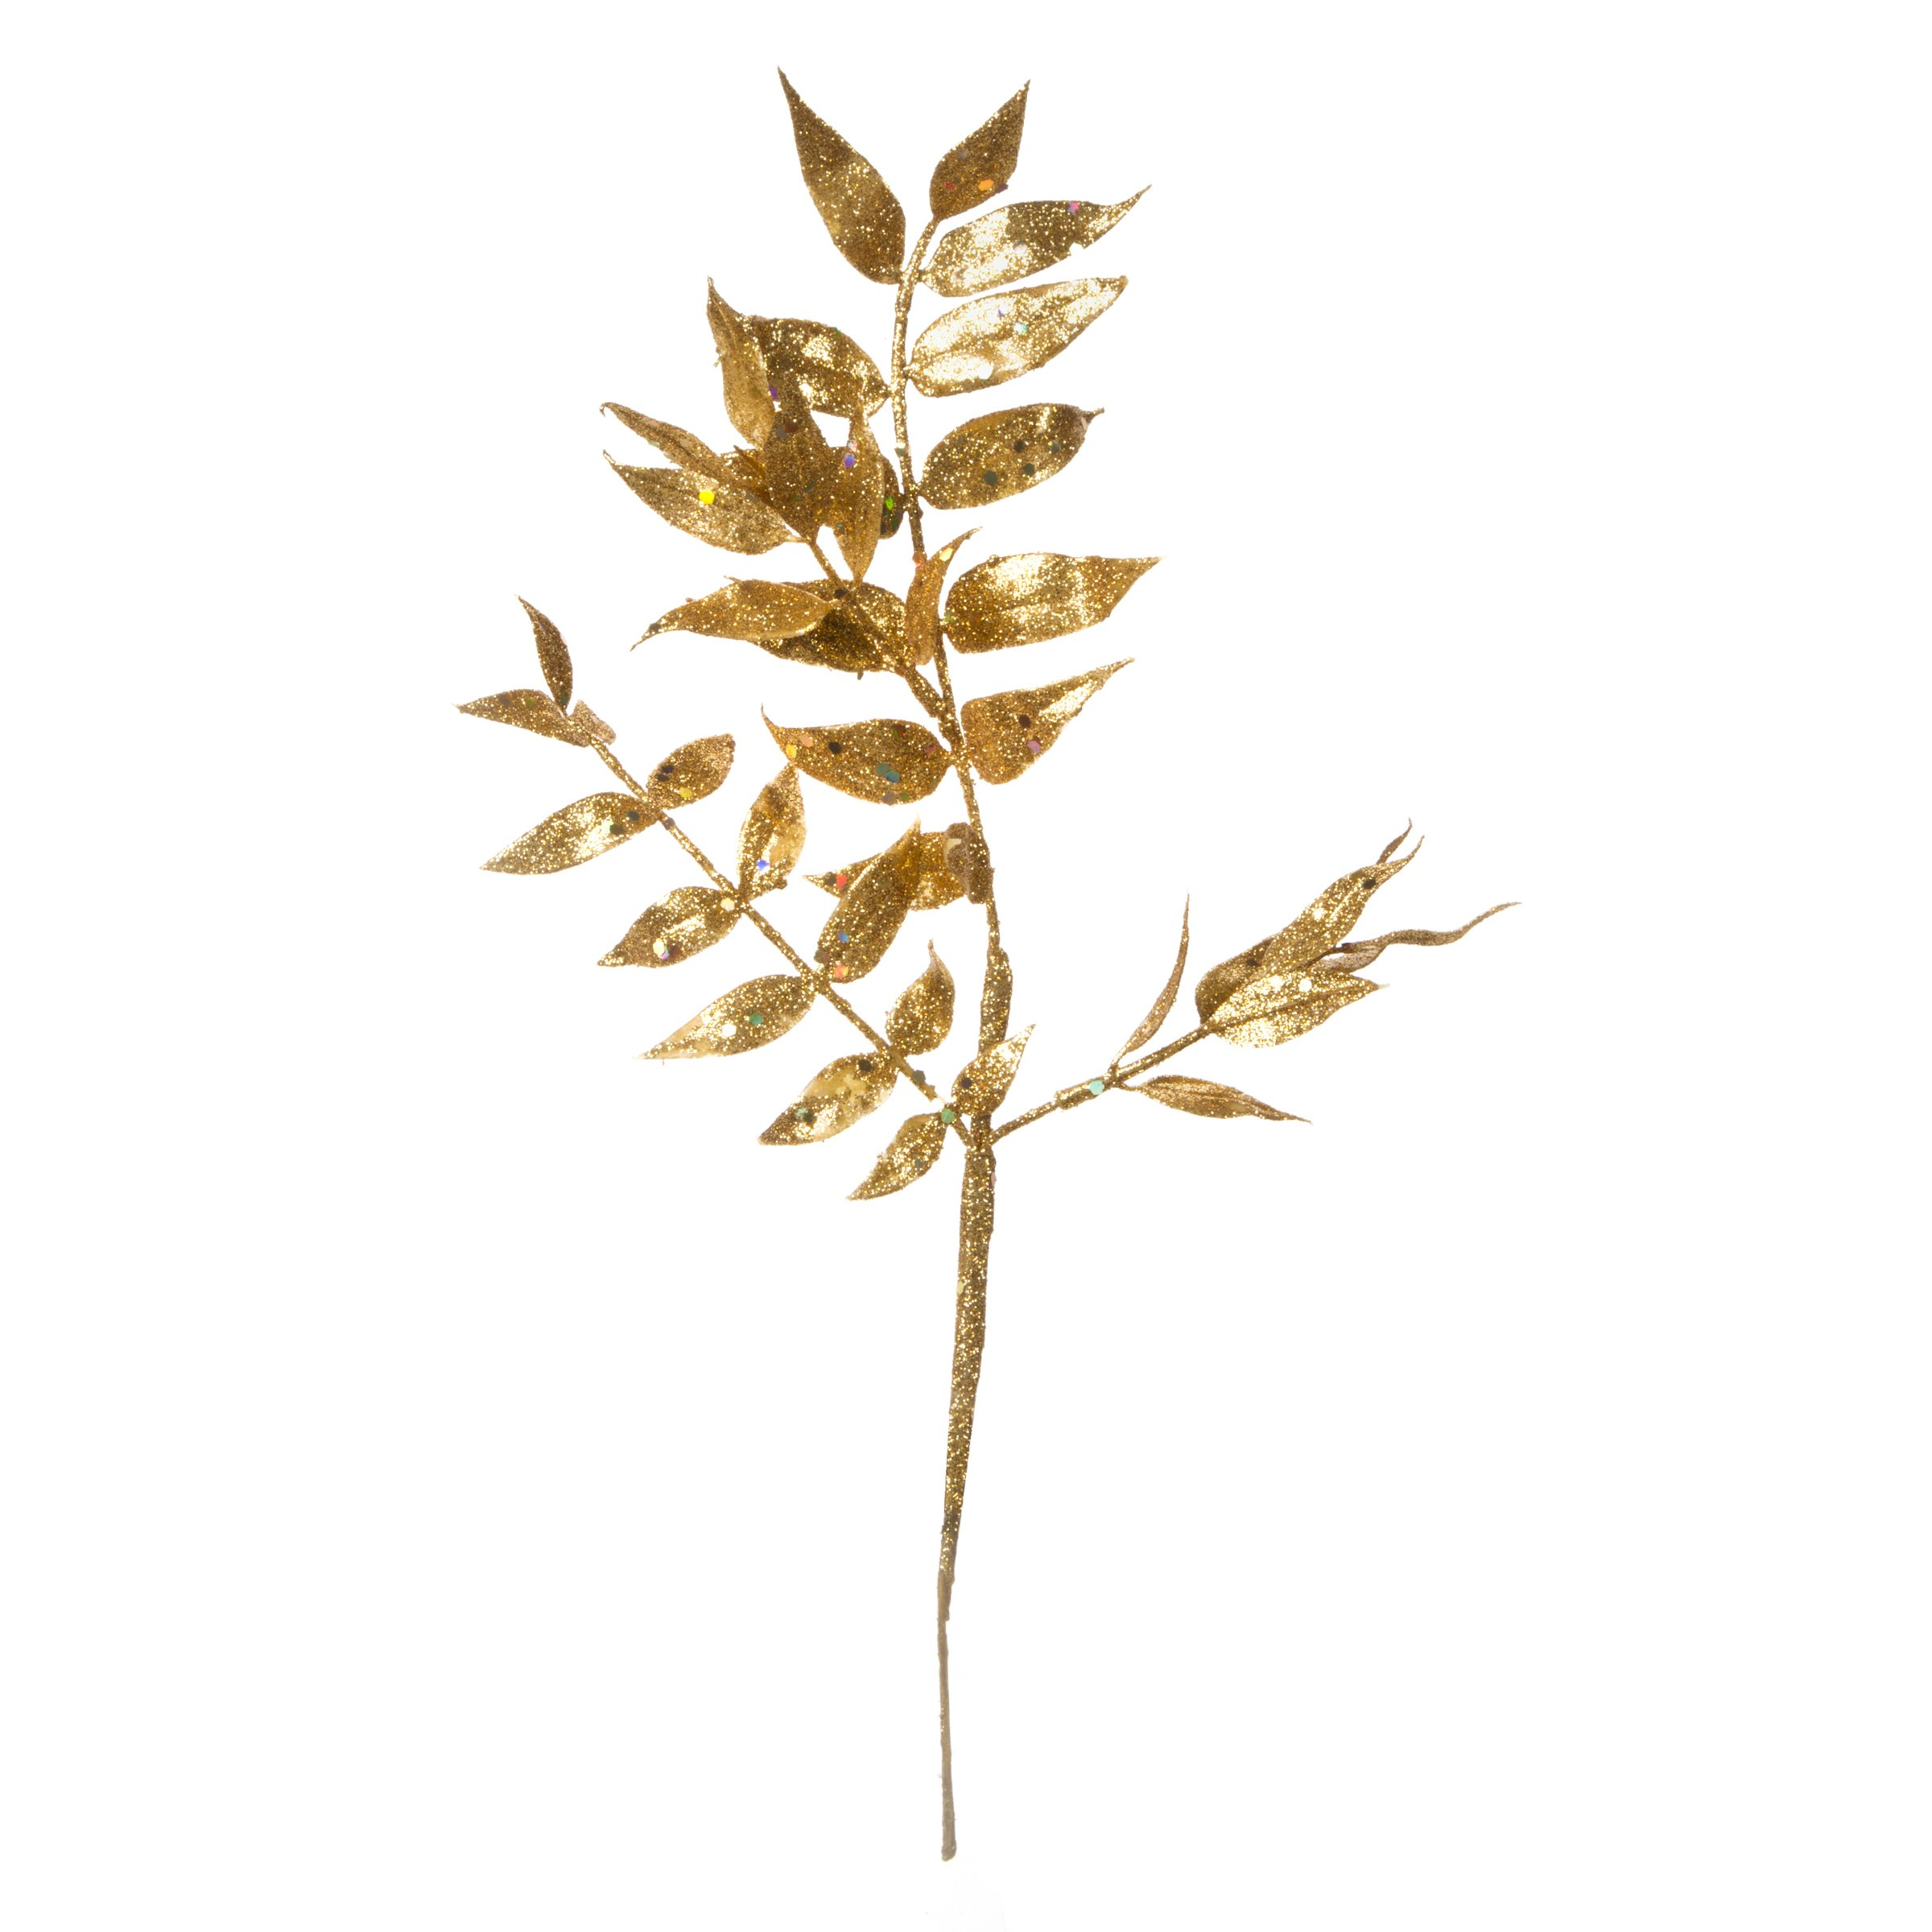 Darice Gold Leaves Pick Glitter 12 inches 4 Tips (6 Pack)